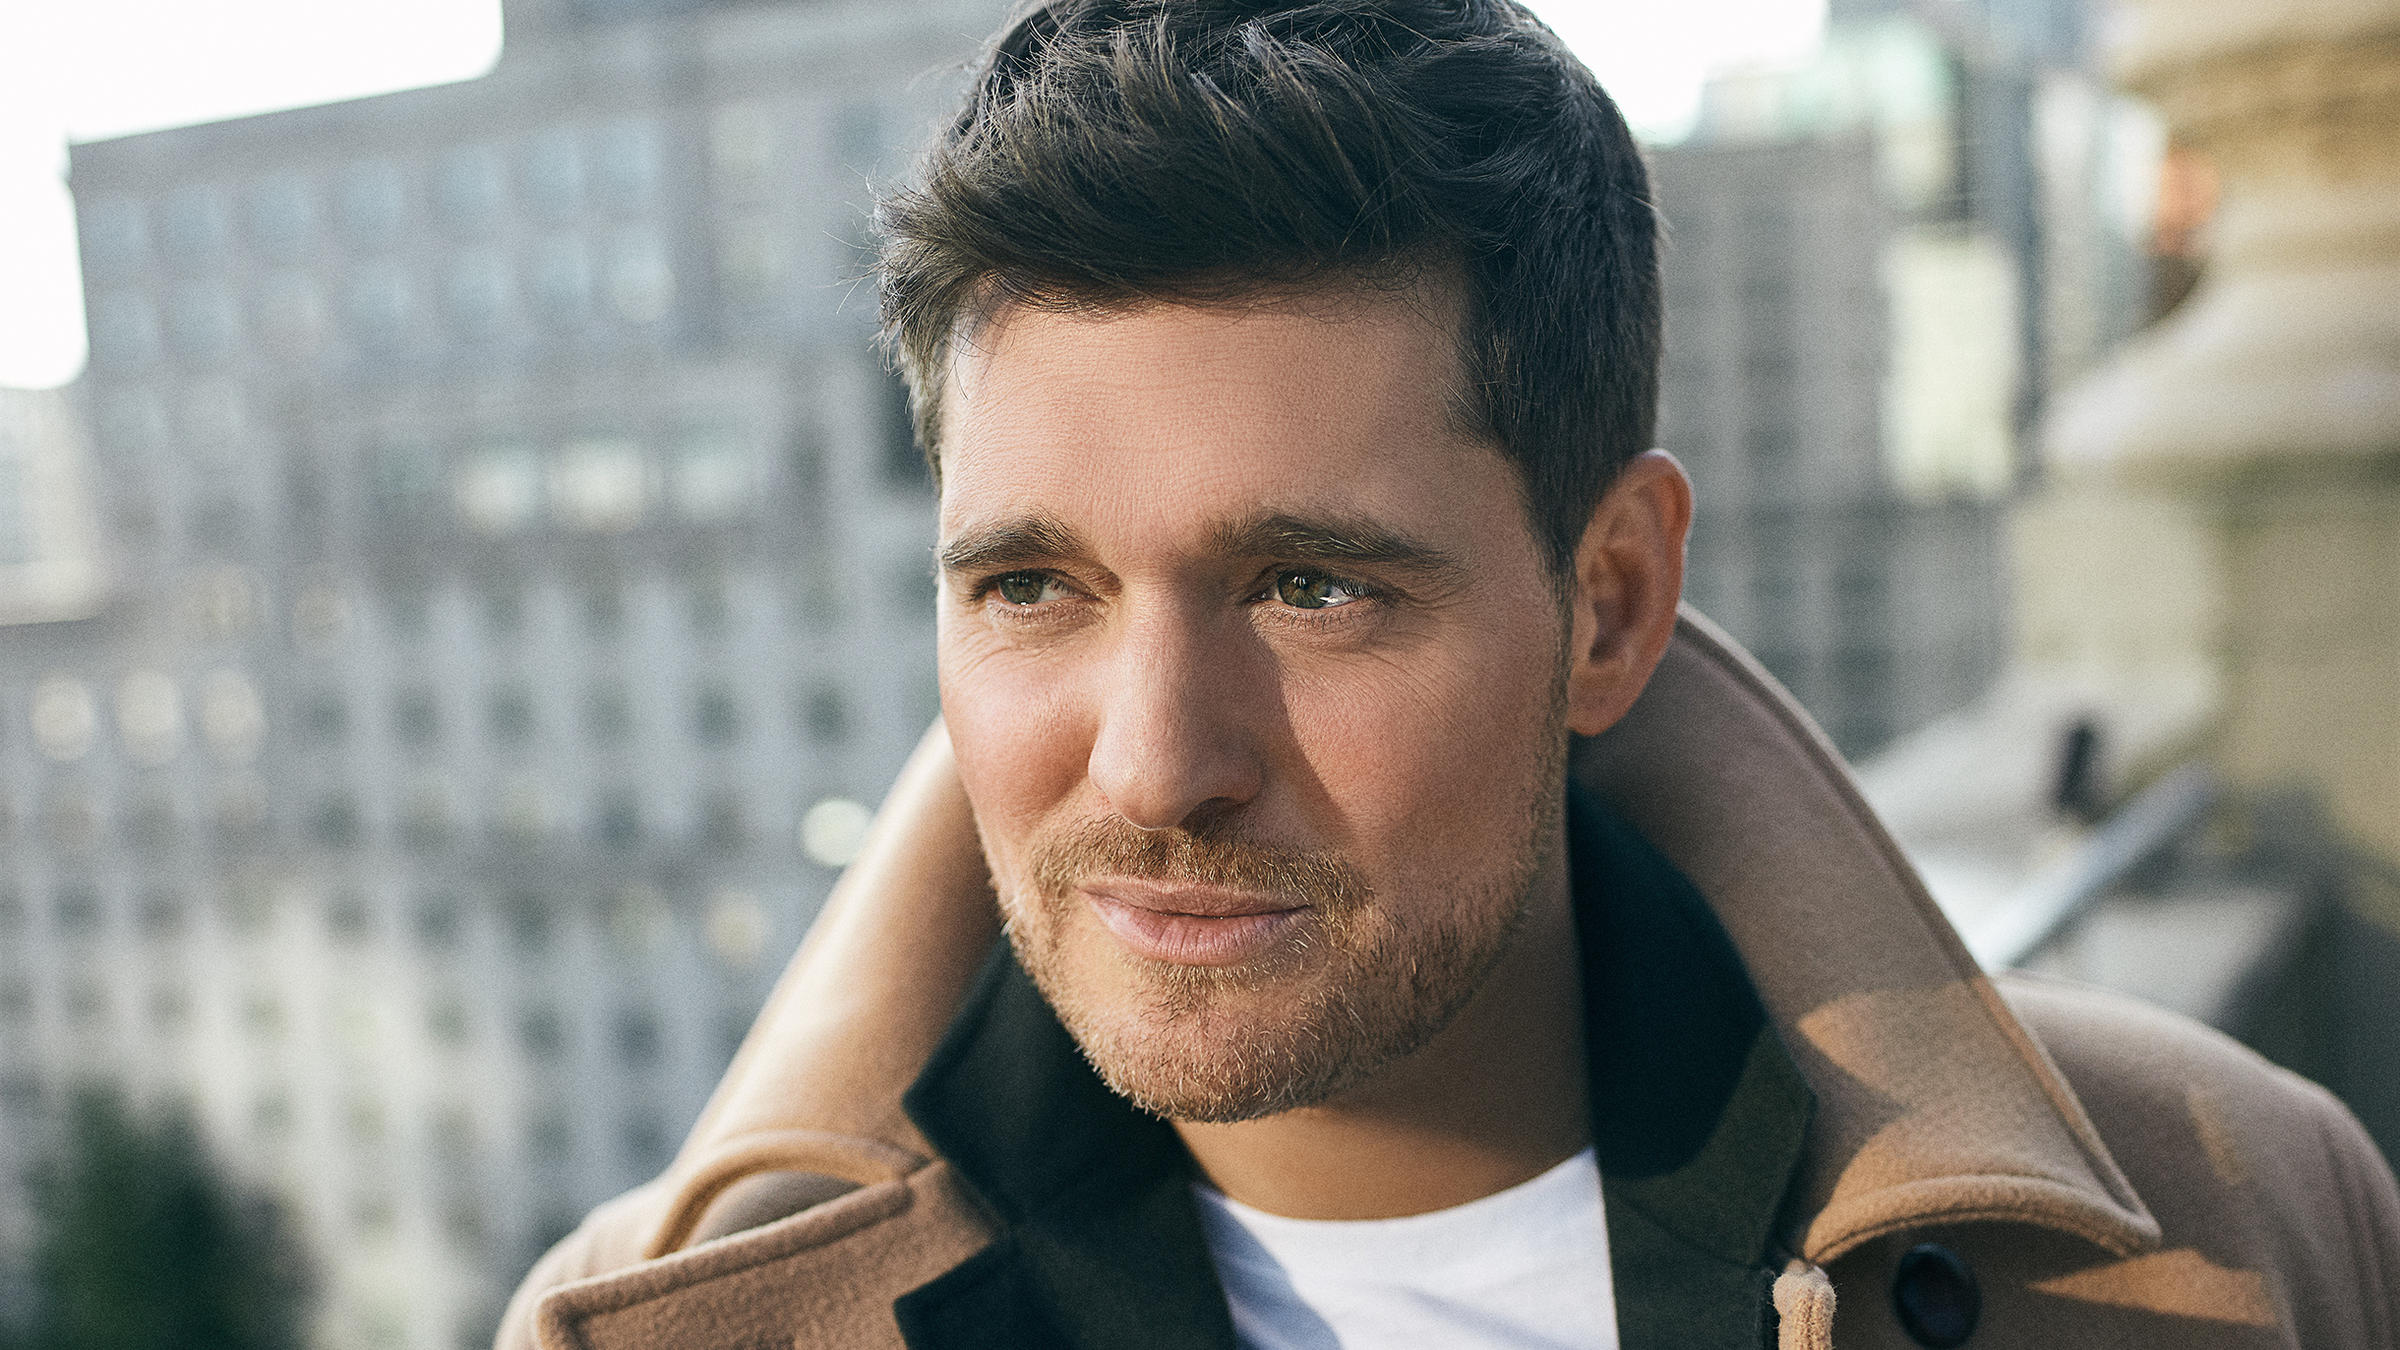 Michael Bublé Wants To Spread The \'love\' | NPR Illinois